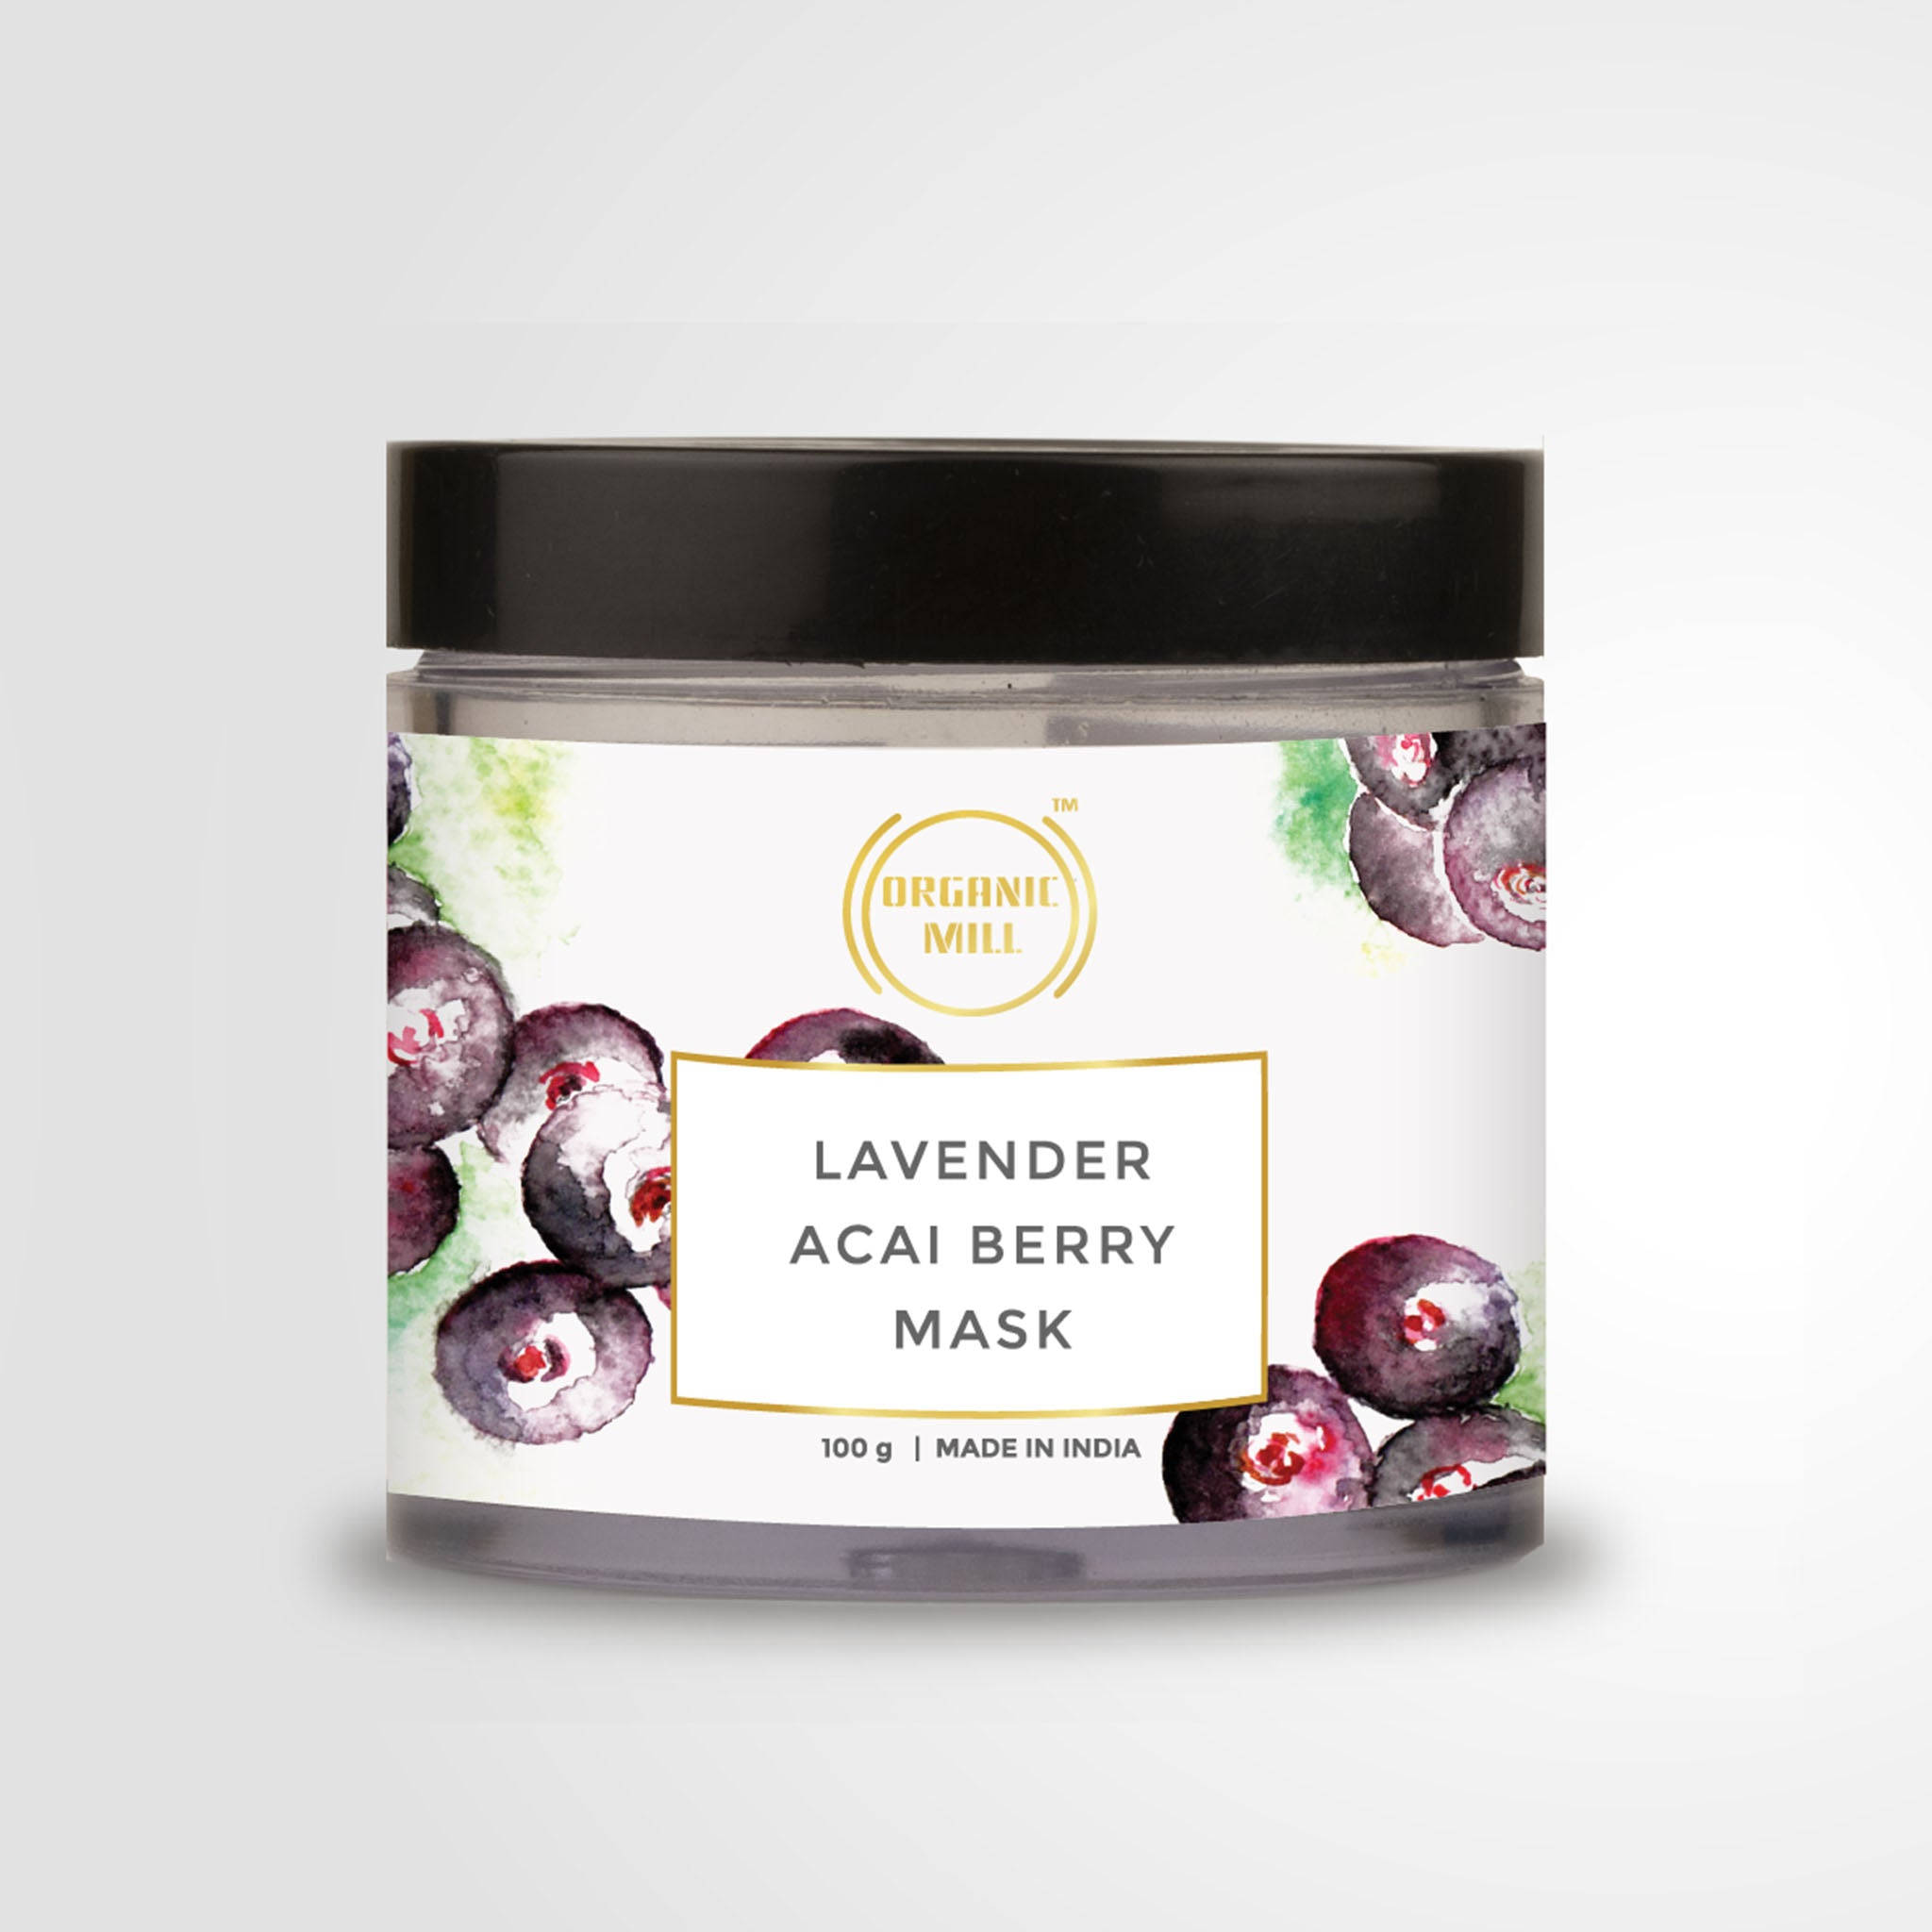 Acai Berry & Lavender Mask